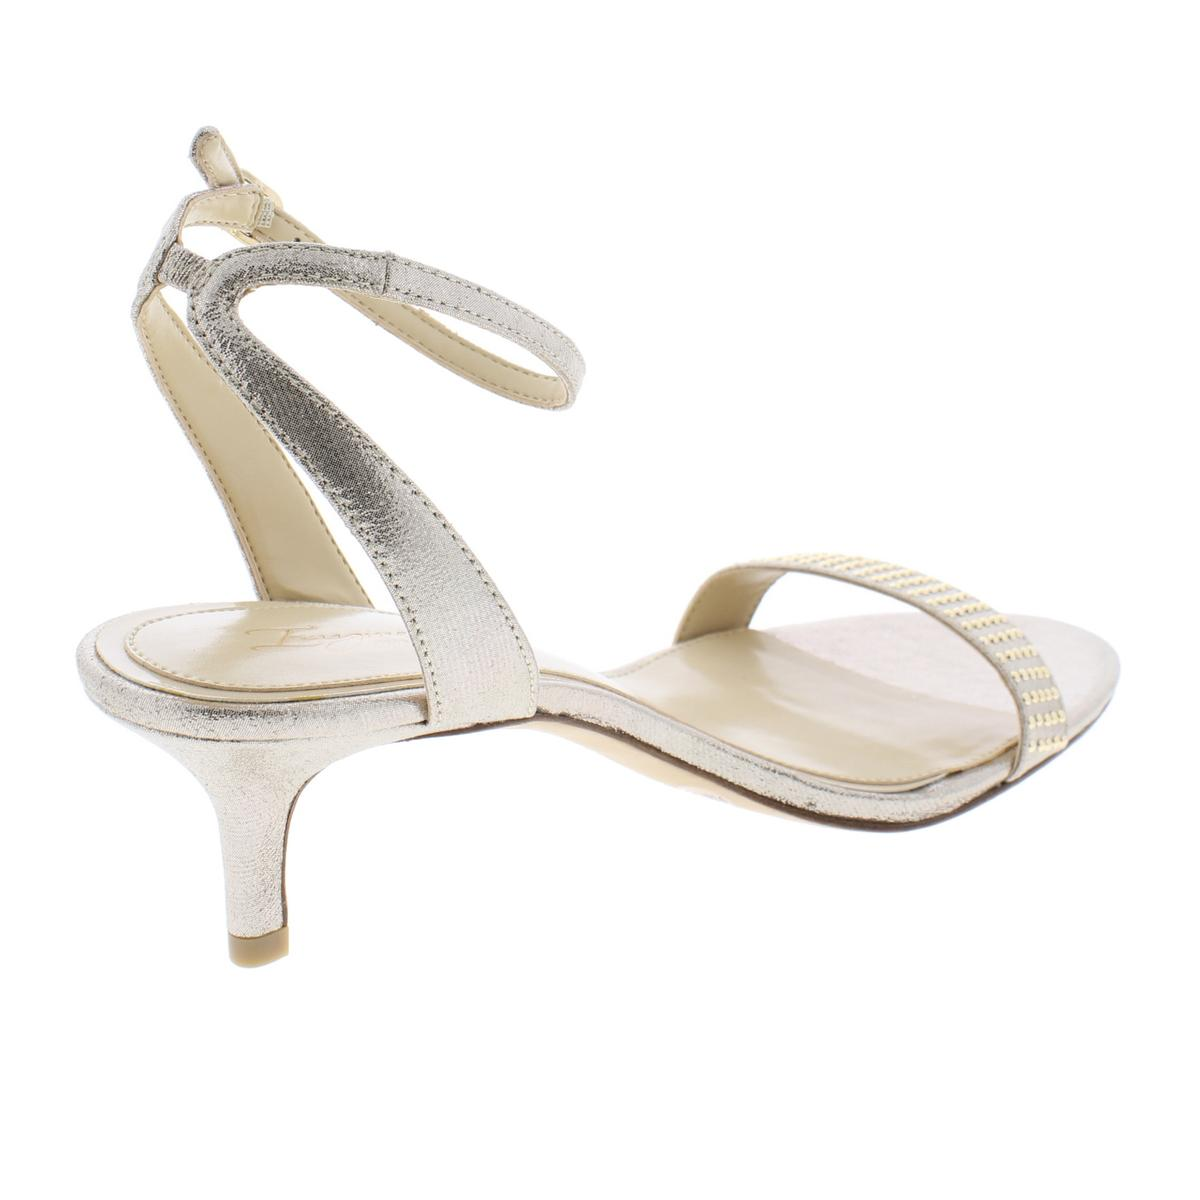 Imagine Imagine Imagine Vince Camuto donna Kevil Metallic Heels Evening Sandals scarpe BHFO 9200 2a9e54